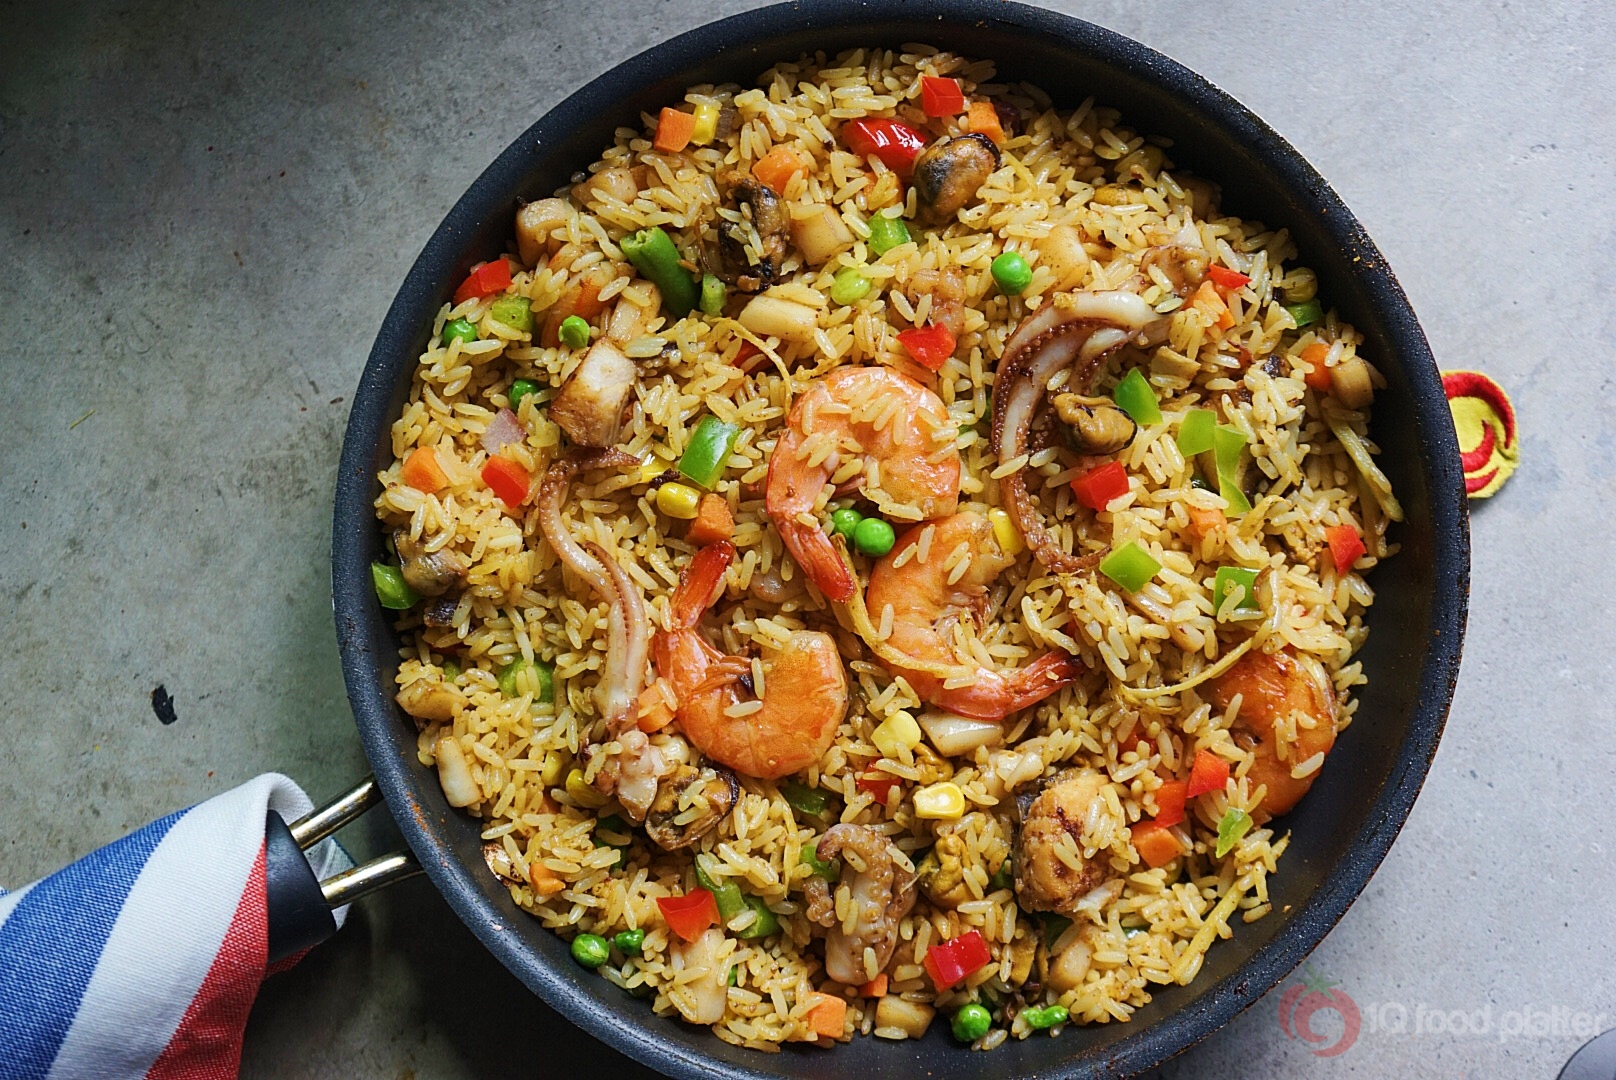 How to make coconut fried rice top nigerian food blog coconut fried rice 3 ccuart Gallery